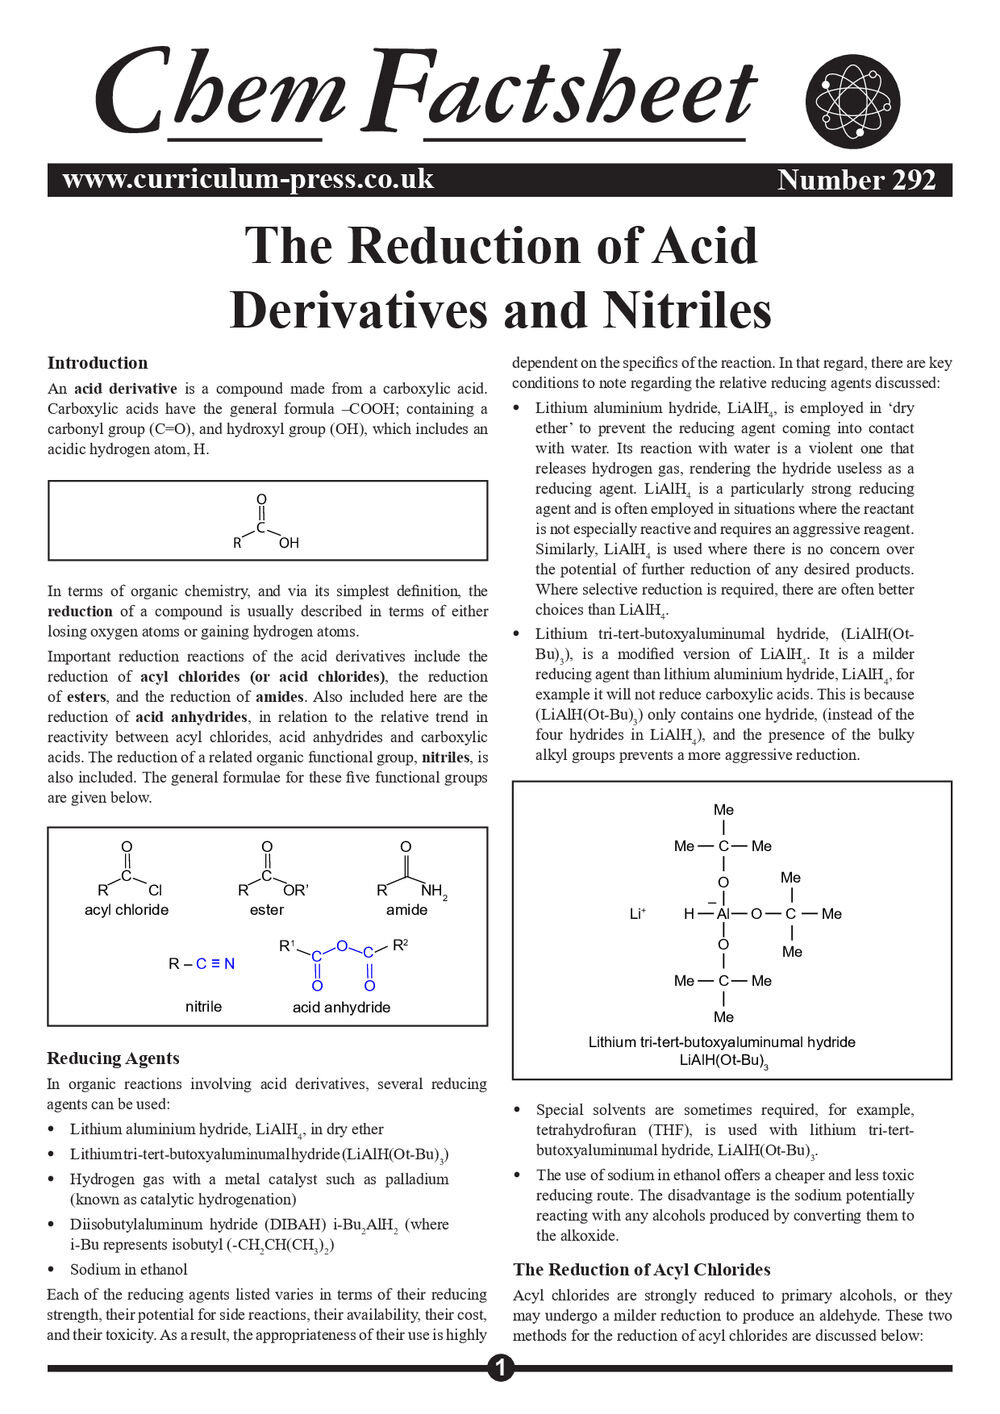 292 Reduction Acid Derivatives Nitriles